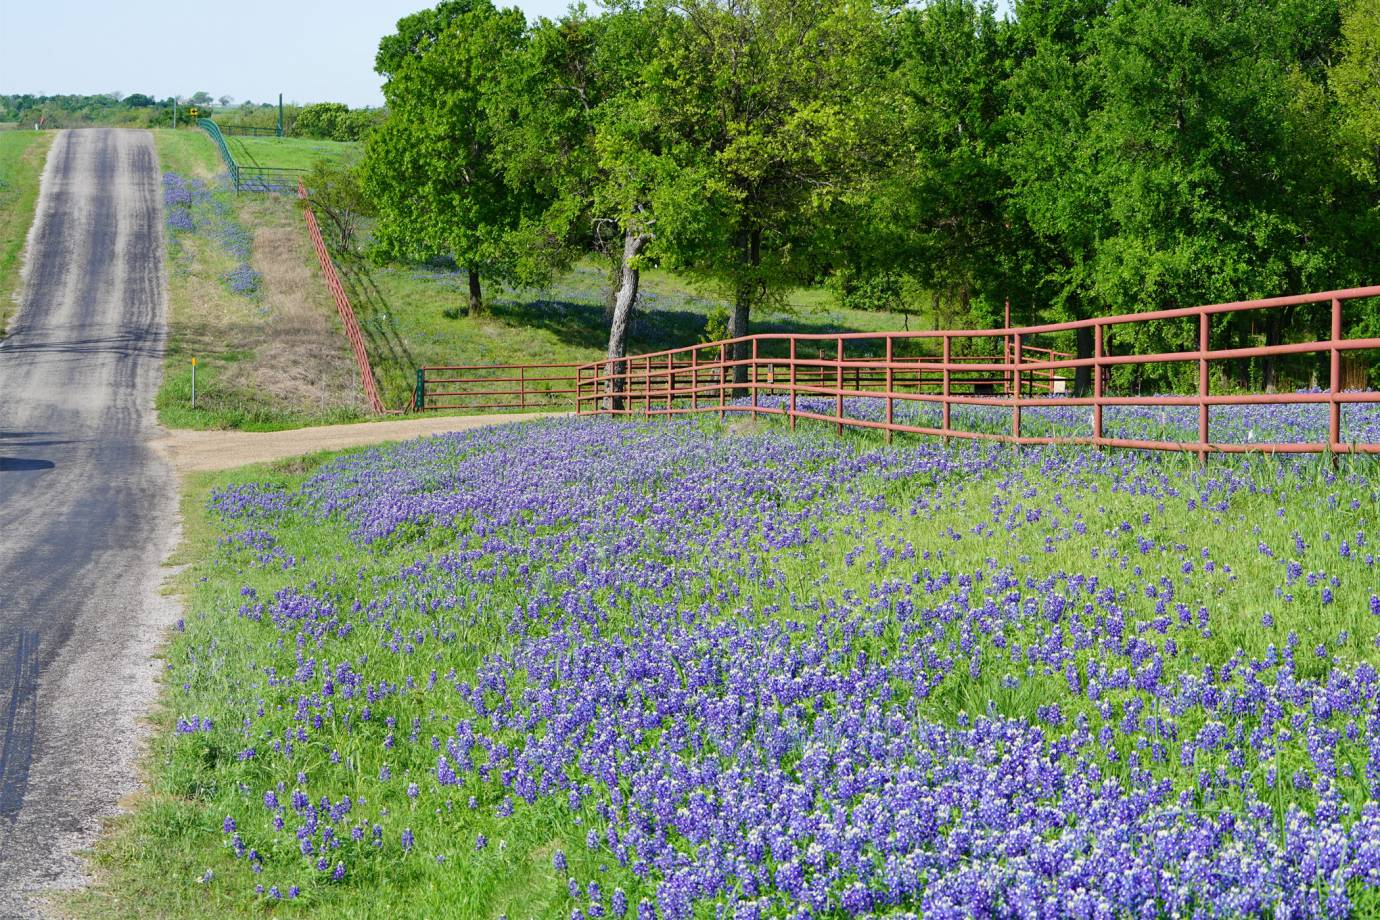 purple wildflowers along a country road in Texas